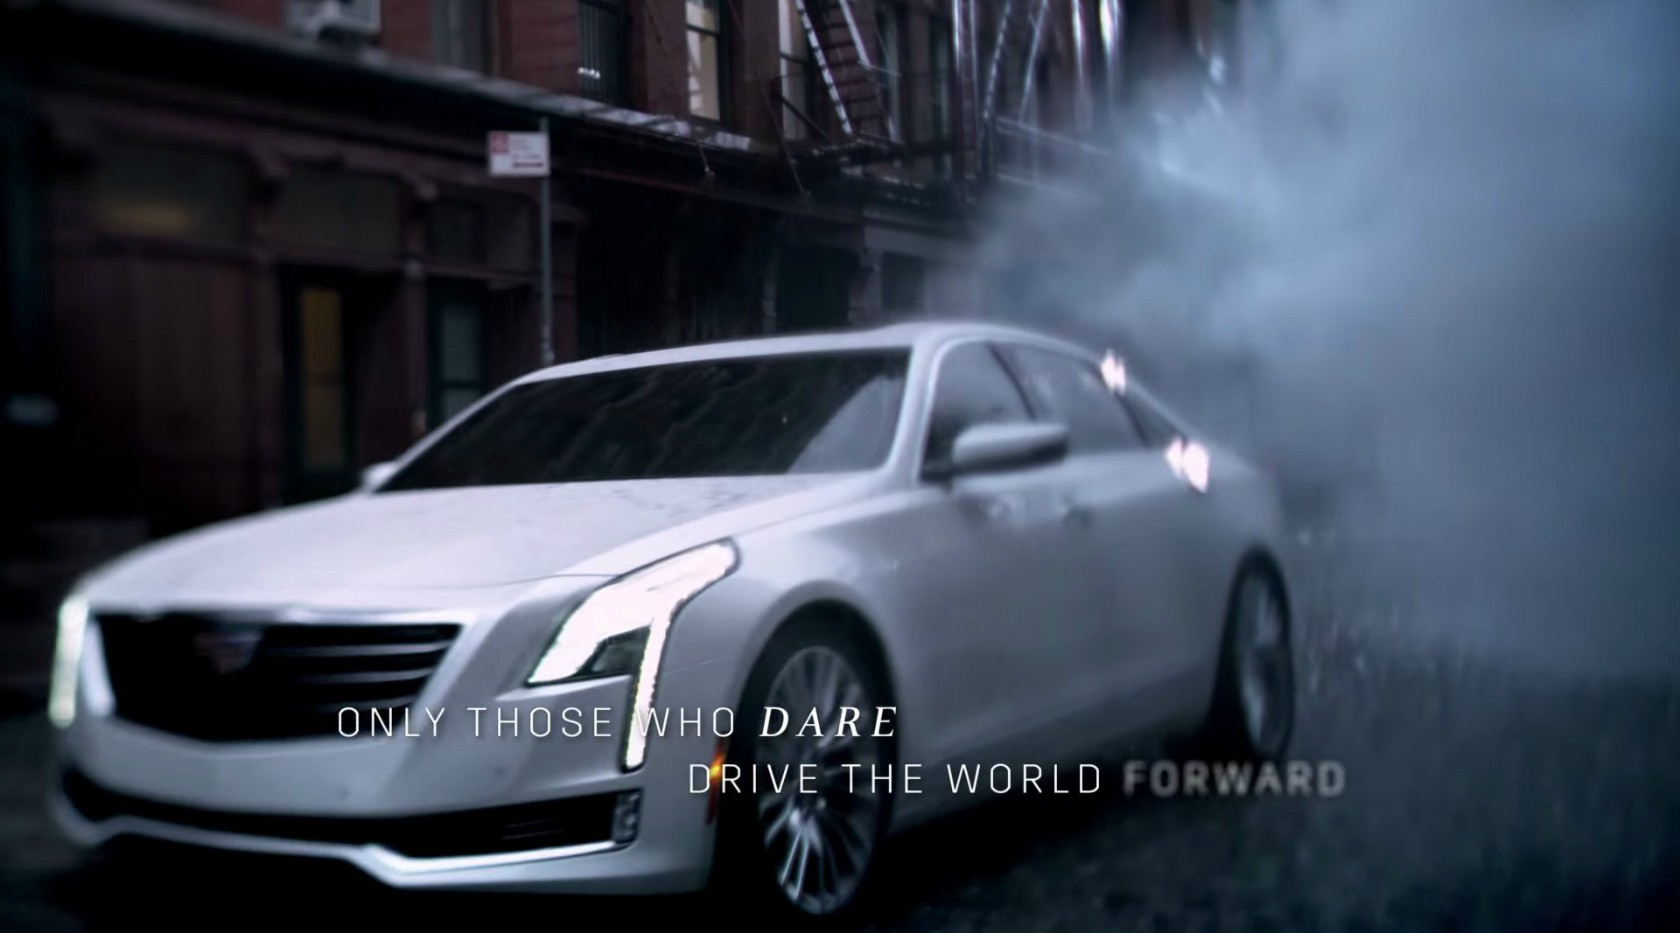 2016 cadillac ct6 powertrain options to include 2 liter turbo and twin turbo v8 lt5. Black Bedroom Furniture Sets. Home Design Ideas